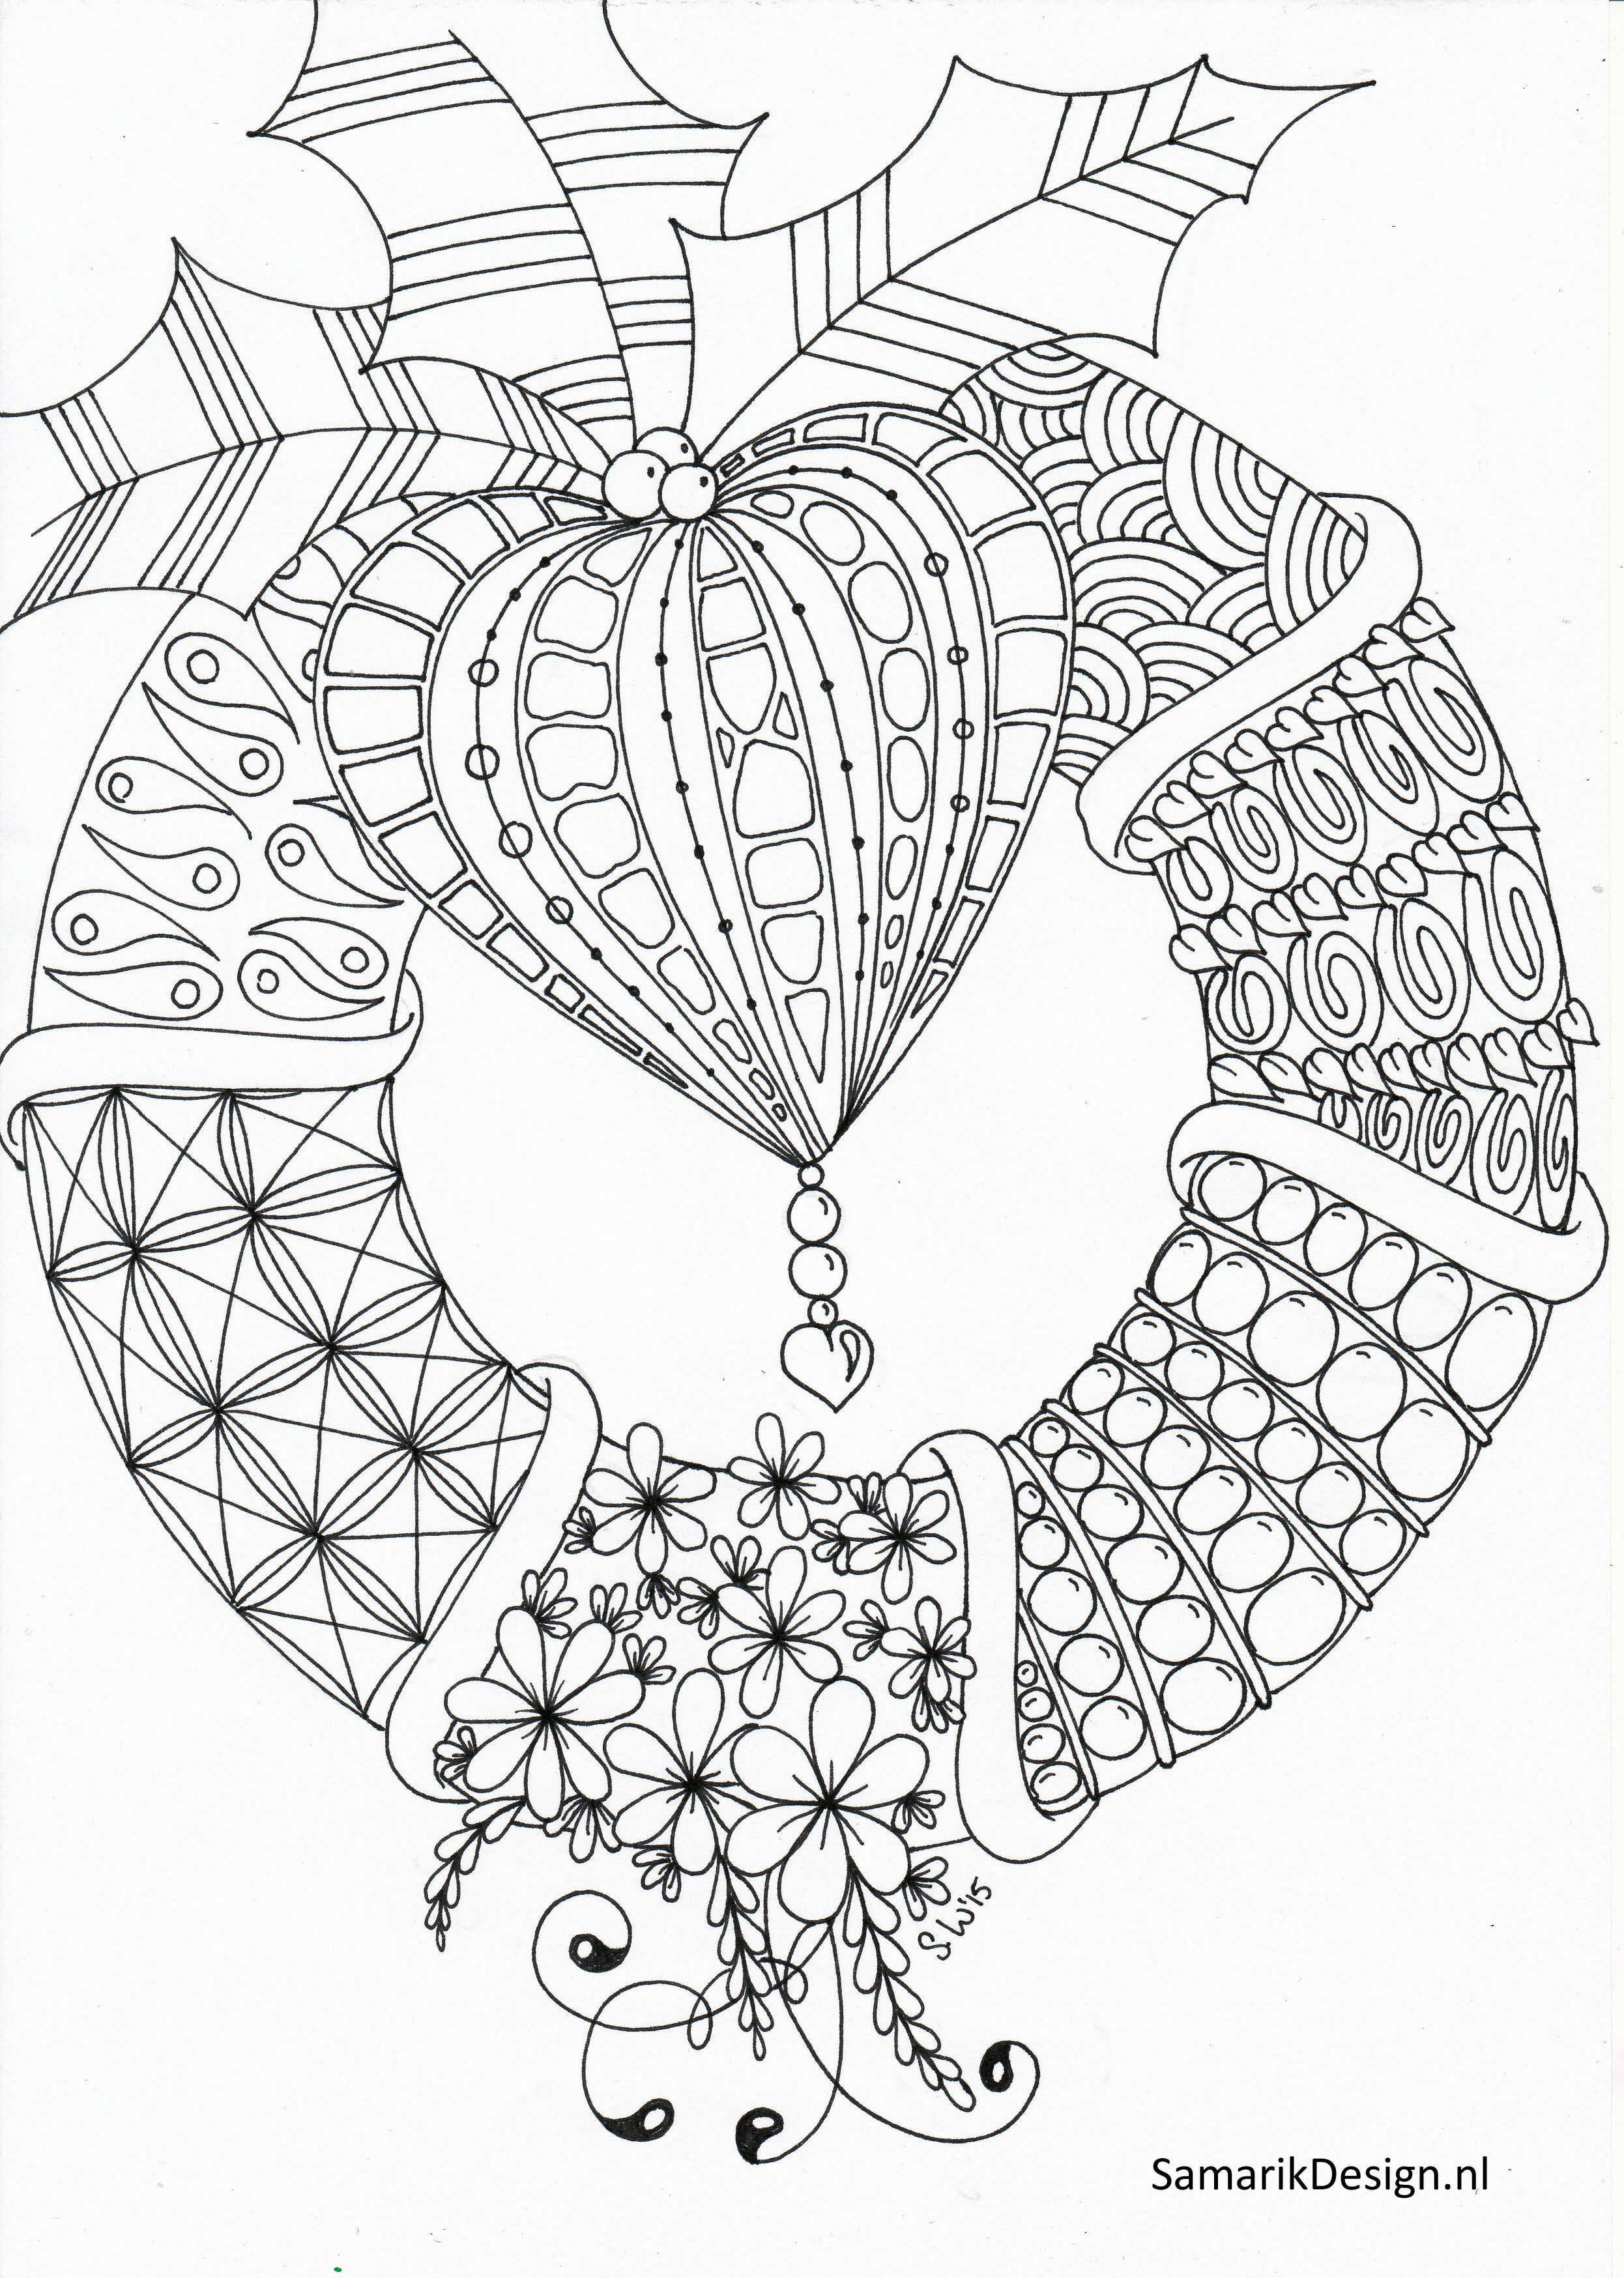 zentangle coloring pages for adults - photo#27